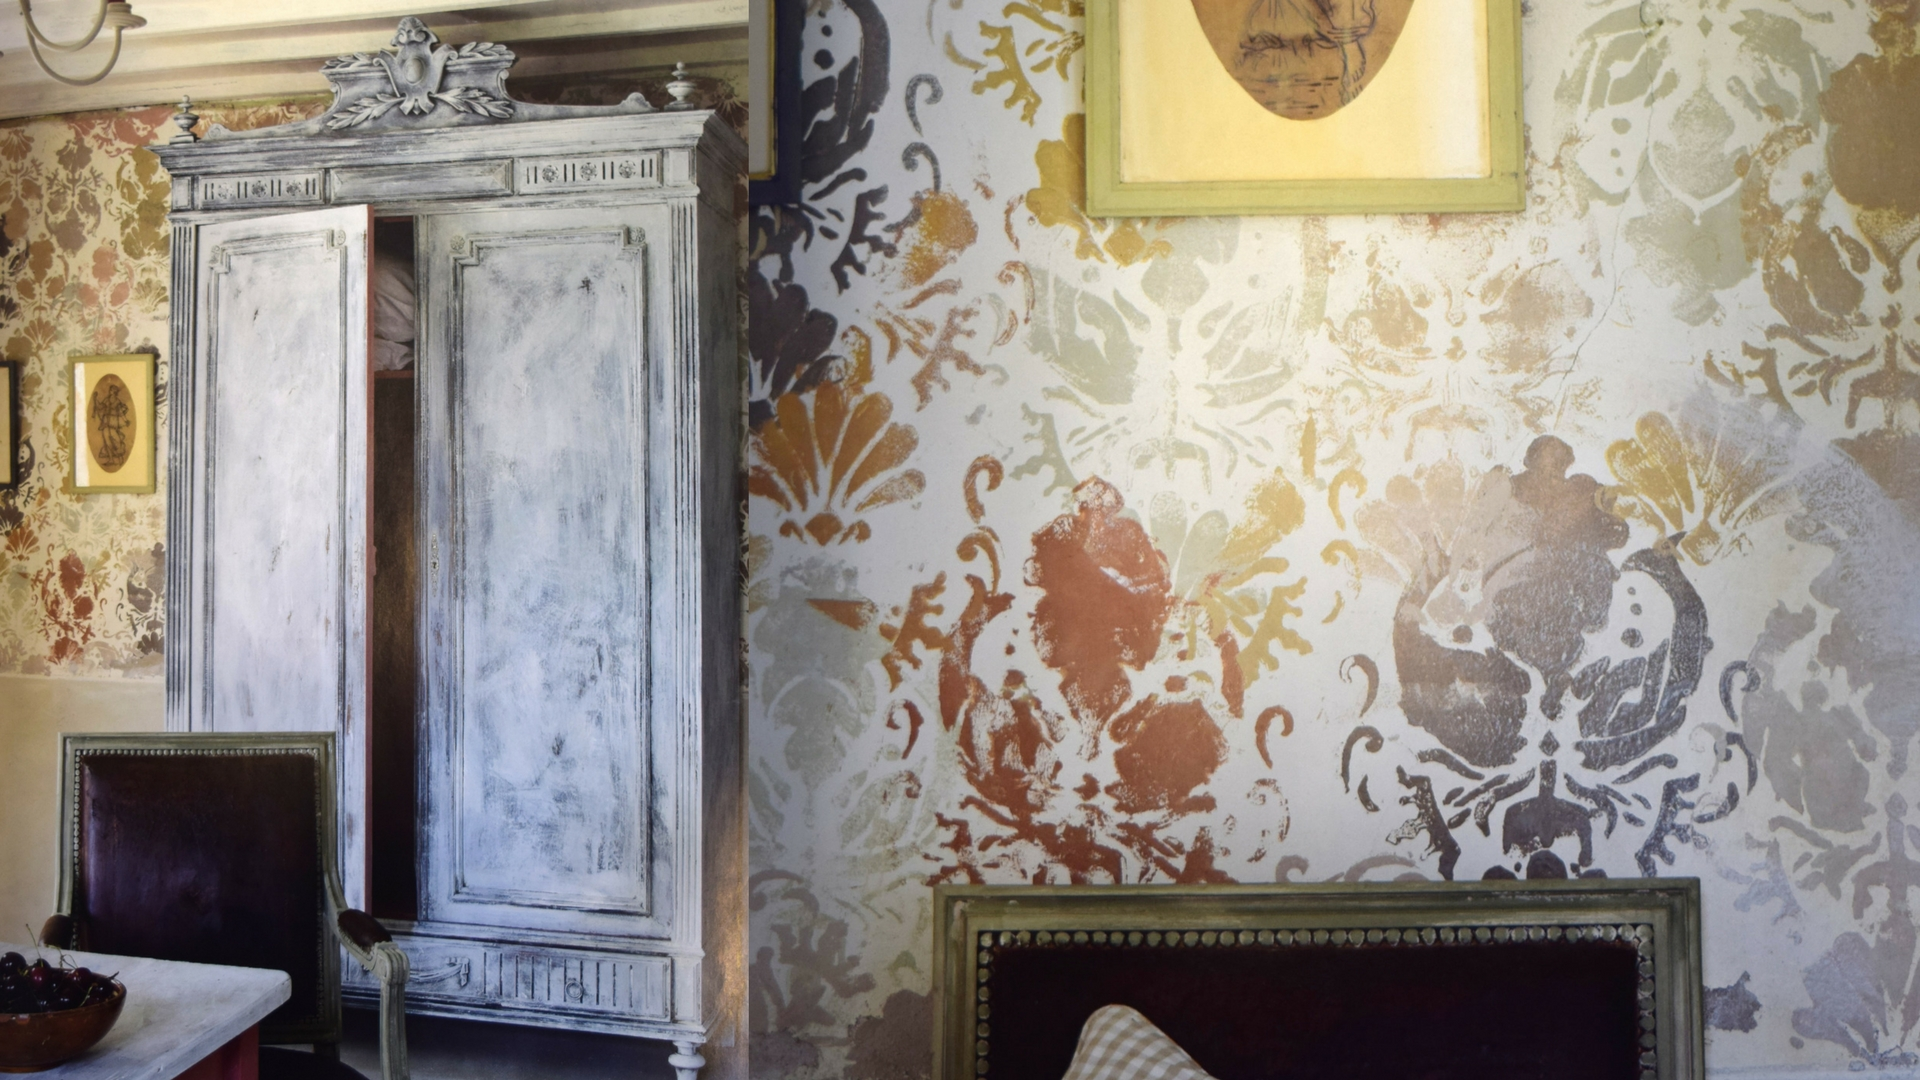 Layers of paints and glazes using pattern and distressing to give a worn wallpaper look. Stenciled patters can also be applied in more of a clean modern fashion like the metallic allover pattern pictured below. Customize pattern, colours and style to suit your space.